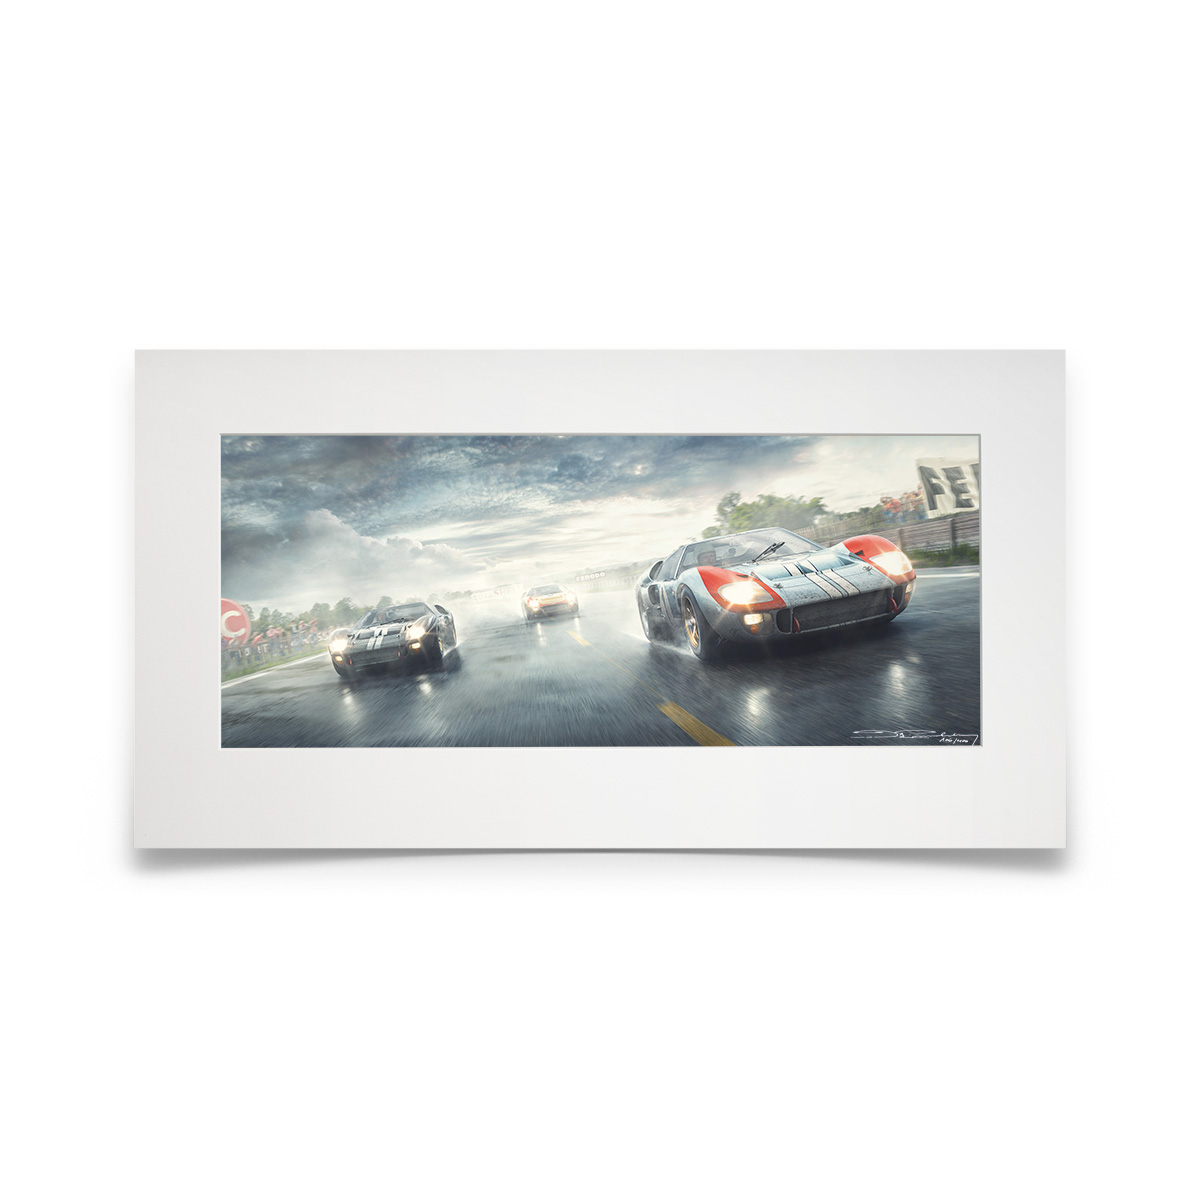 Fords And The Furious Ford Gt40 Le Mans 24 Hours 1966 Fine Art